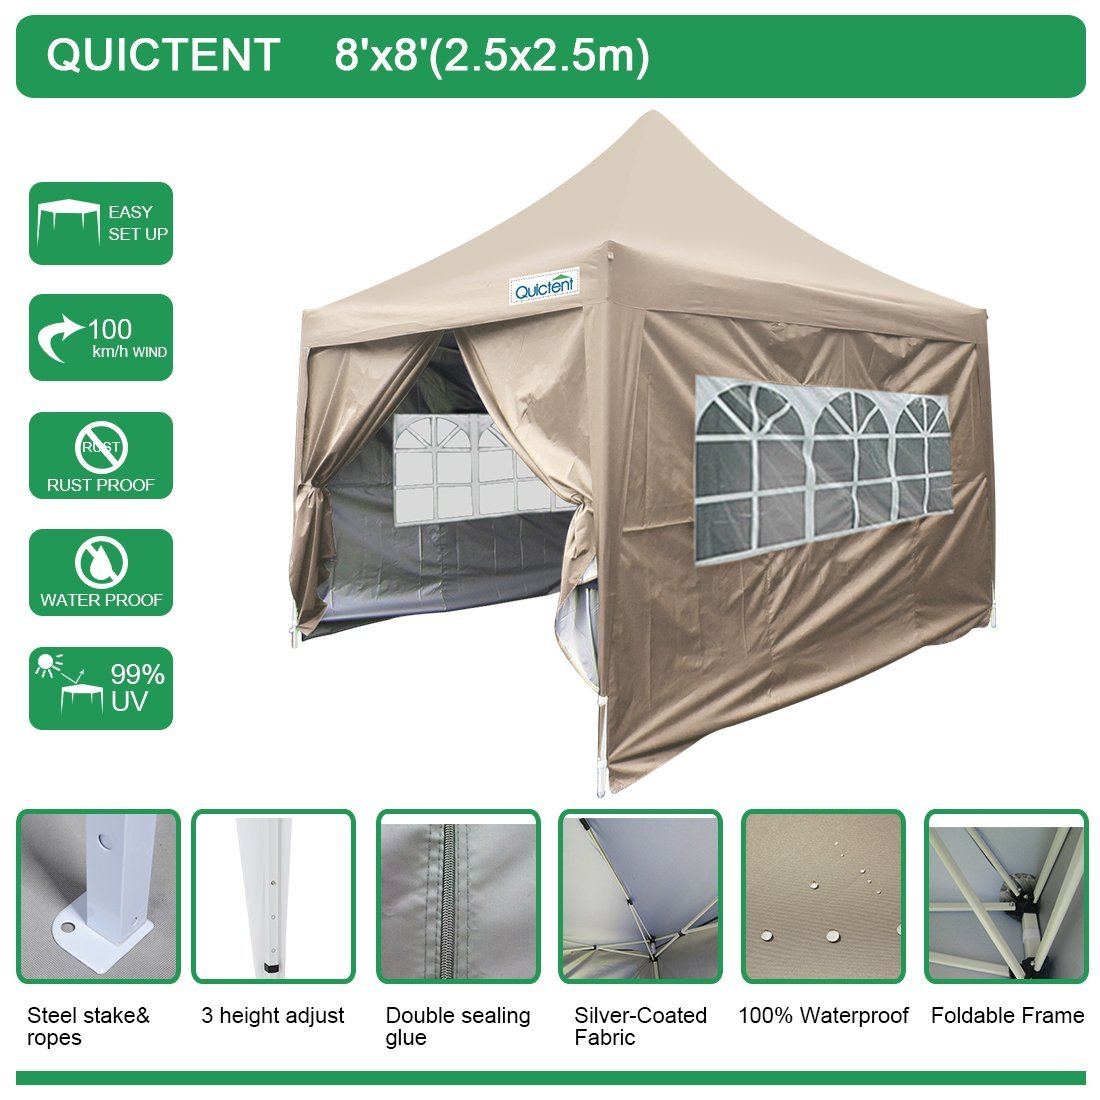 Quictent Silvox 8' x 8' EZ Pop Up Canopy Portable Waterproof Gazebo